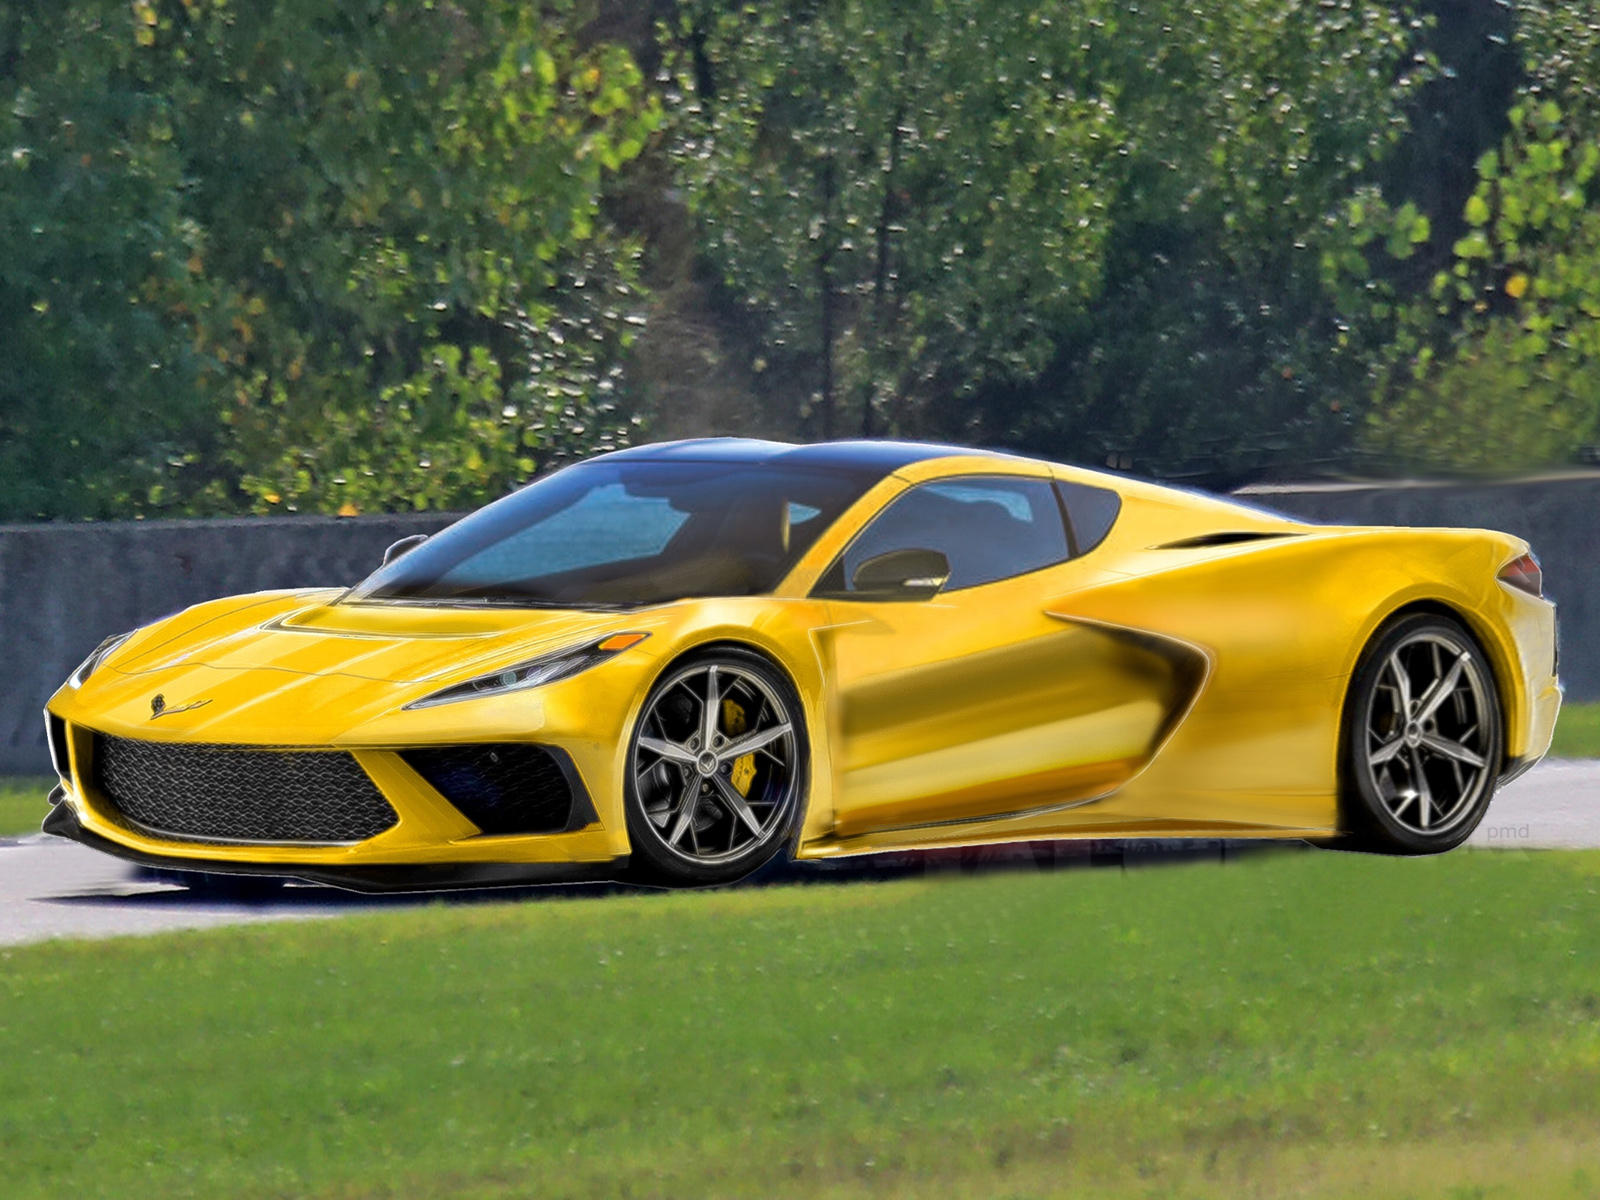 This Is The Best 2020 Mid Engine C8 Corvette Rendering So